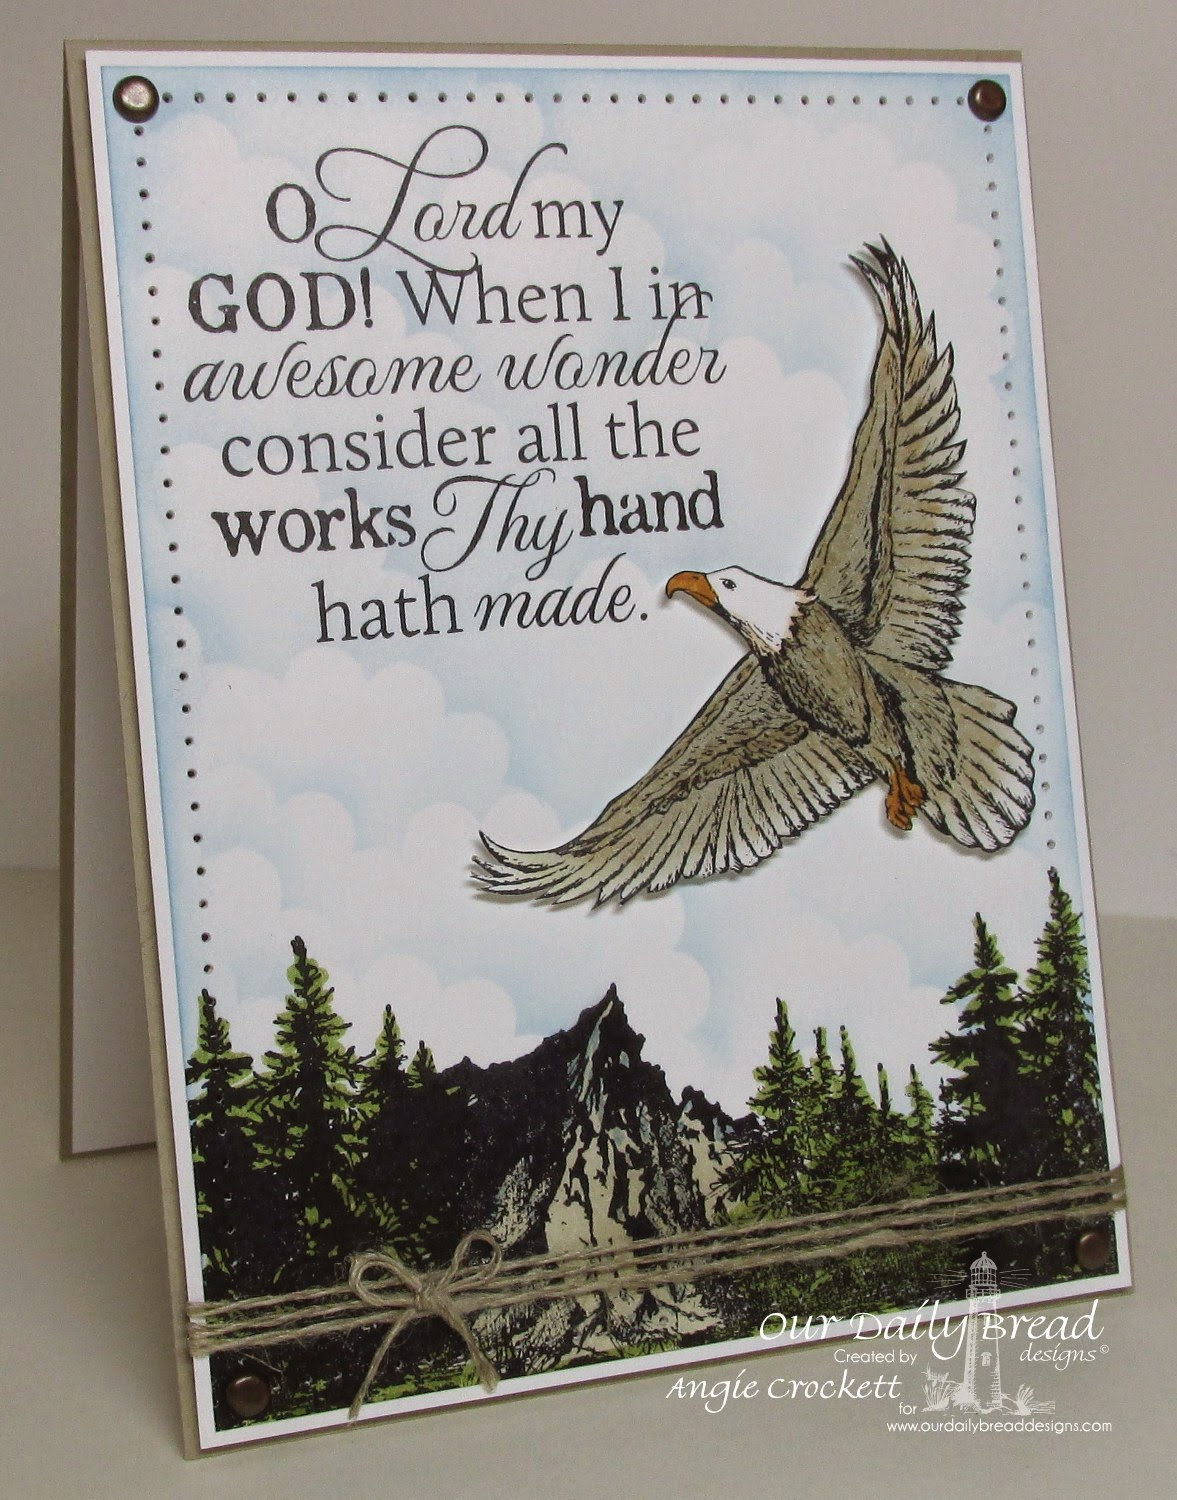 ODBD How Great Thou Art, ODBD On Eagles' Wings, ODBD Keep Climbing, Card Designer Angie Crockett